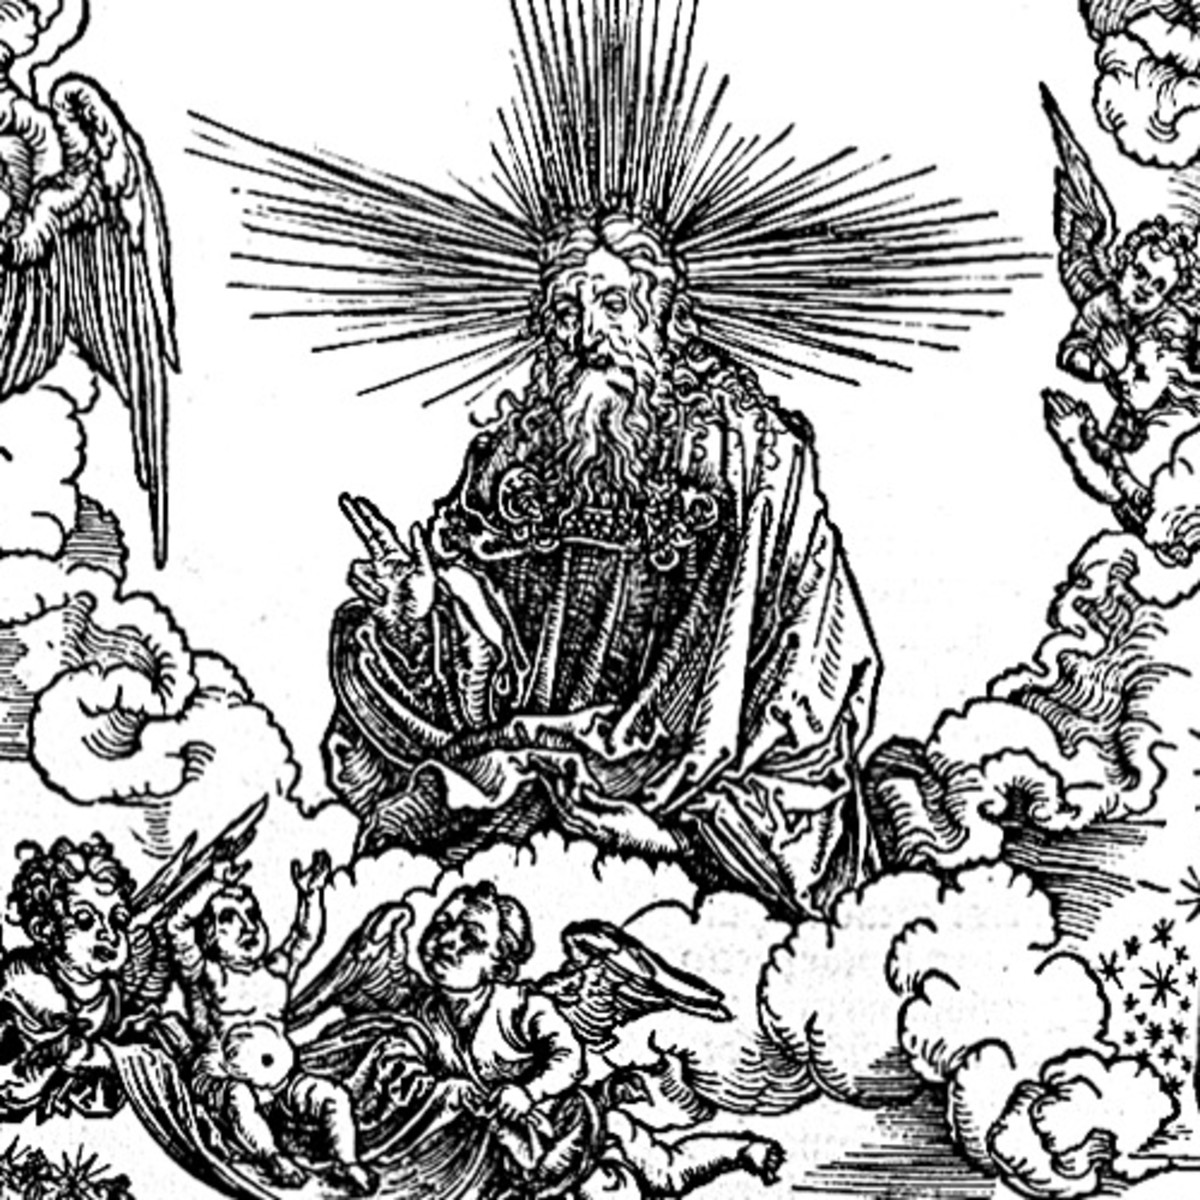 """Here we show another portion of """"The Woman Clothed with the Sun and the Seven-headed Dragon"""" by Albrecht Durer."""